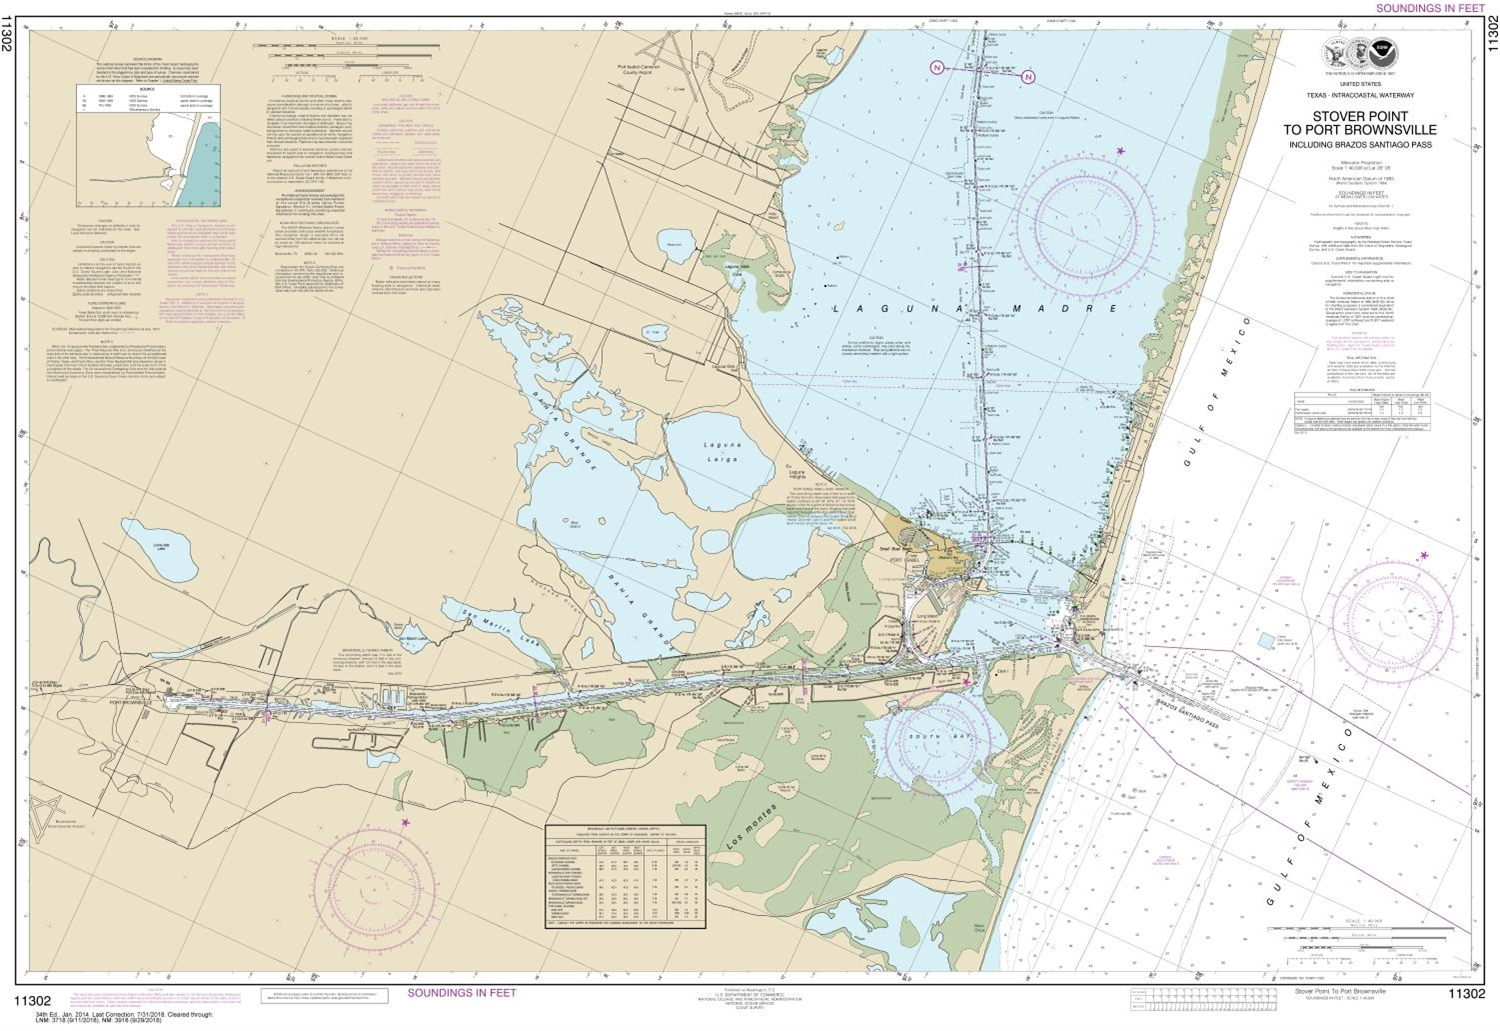 11302 Intracoastal Waterway Stover Point to Port Brownsville, including  Brazos Santiago Pass